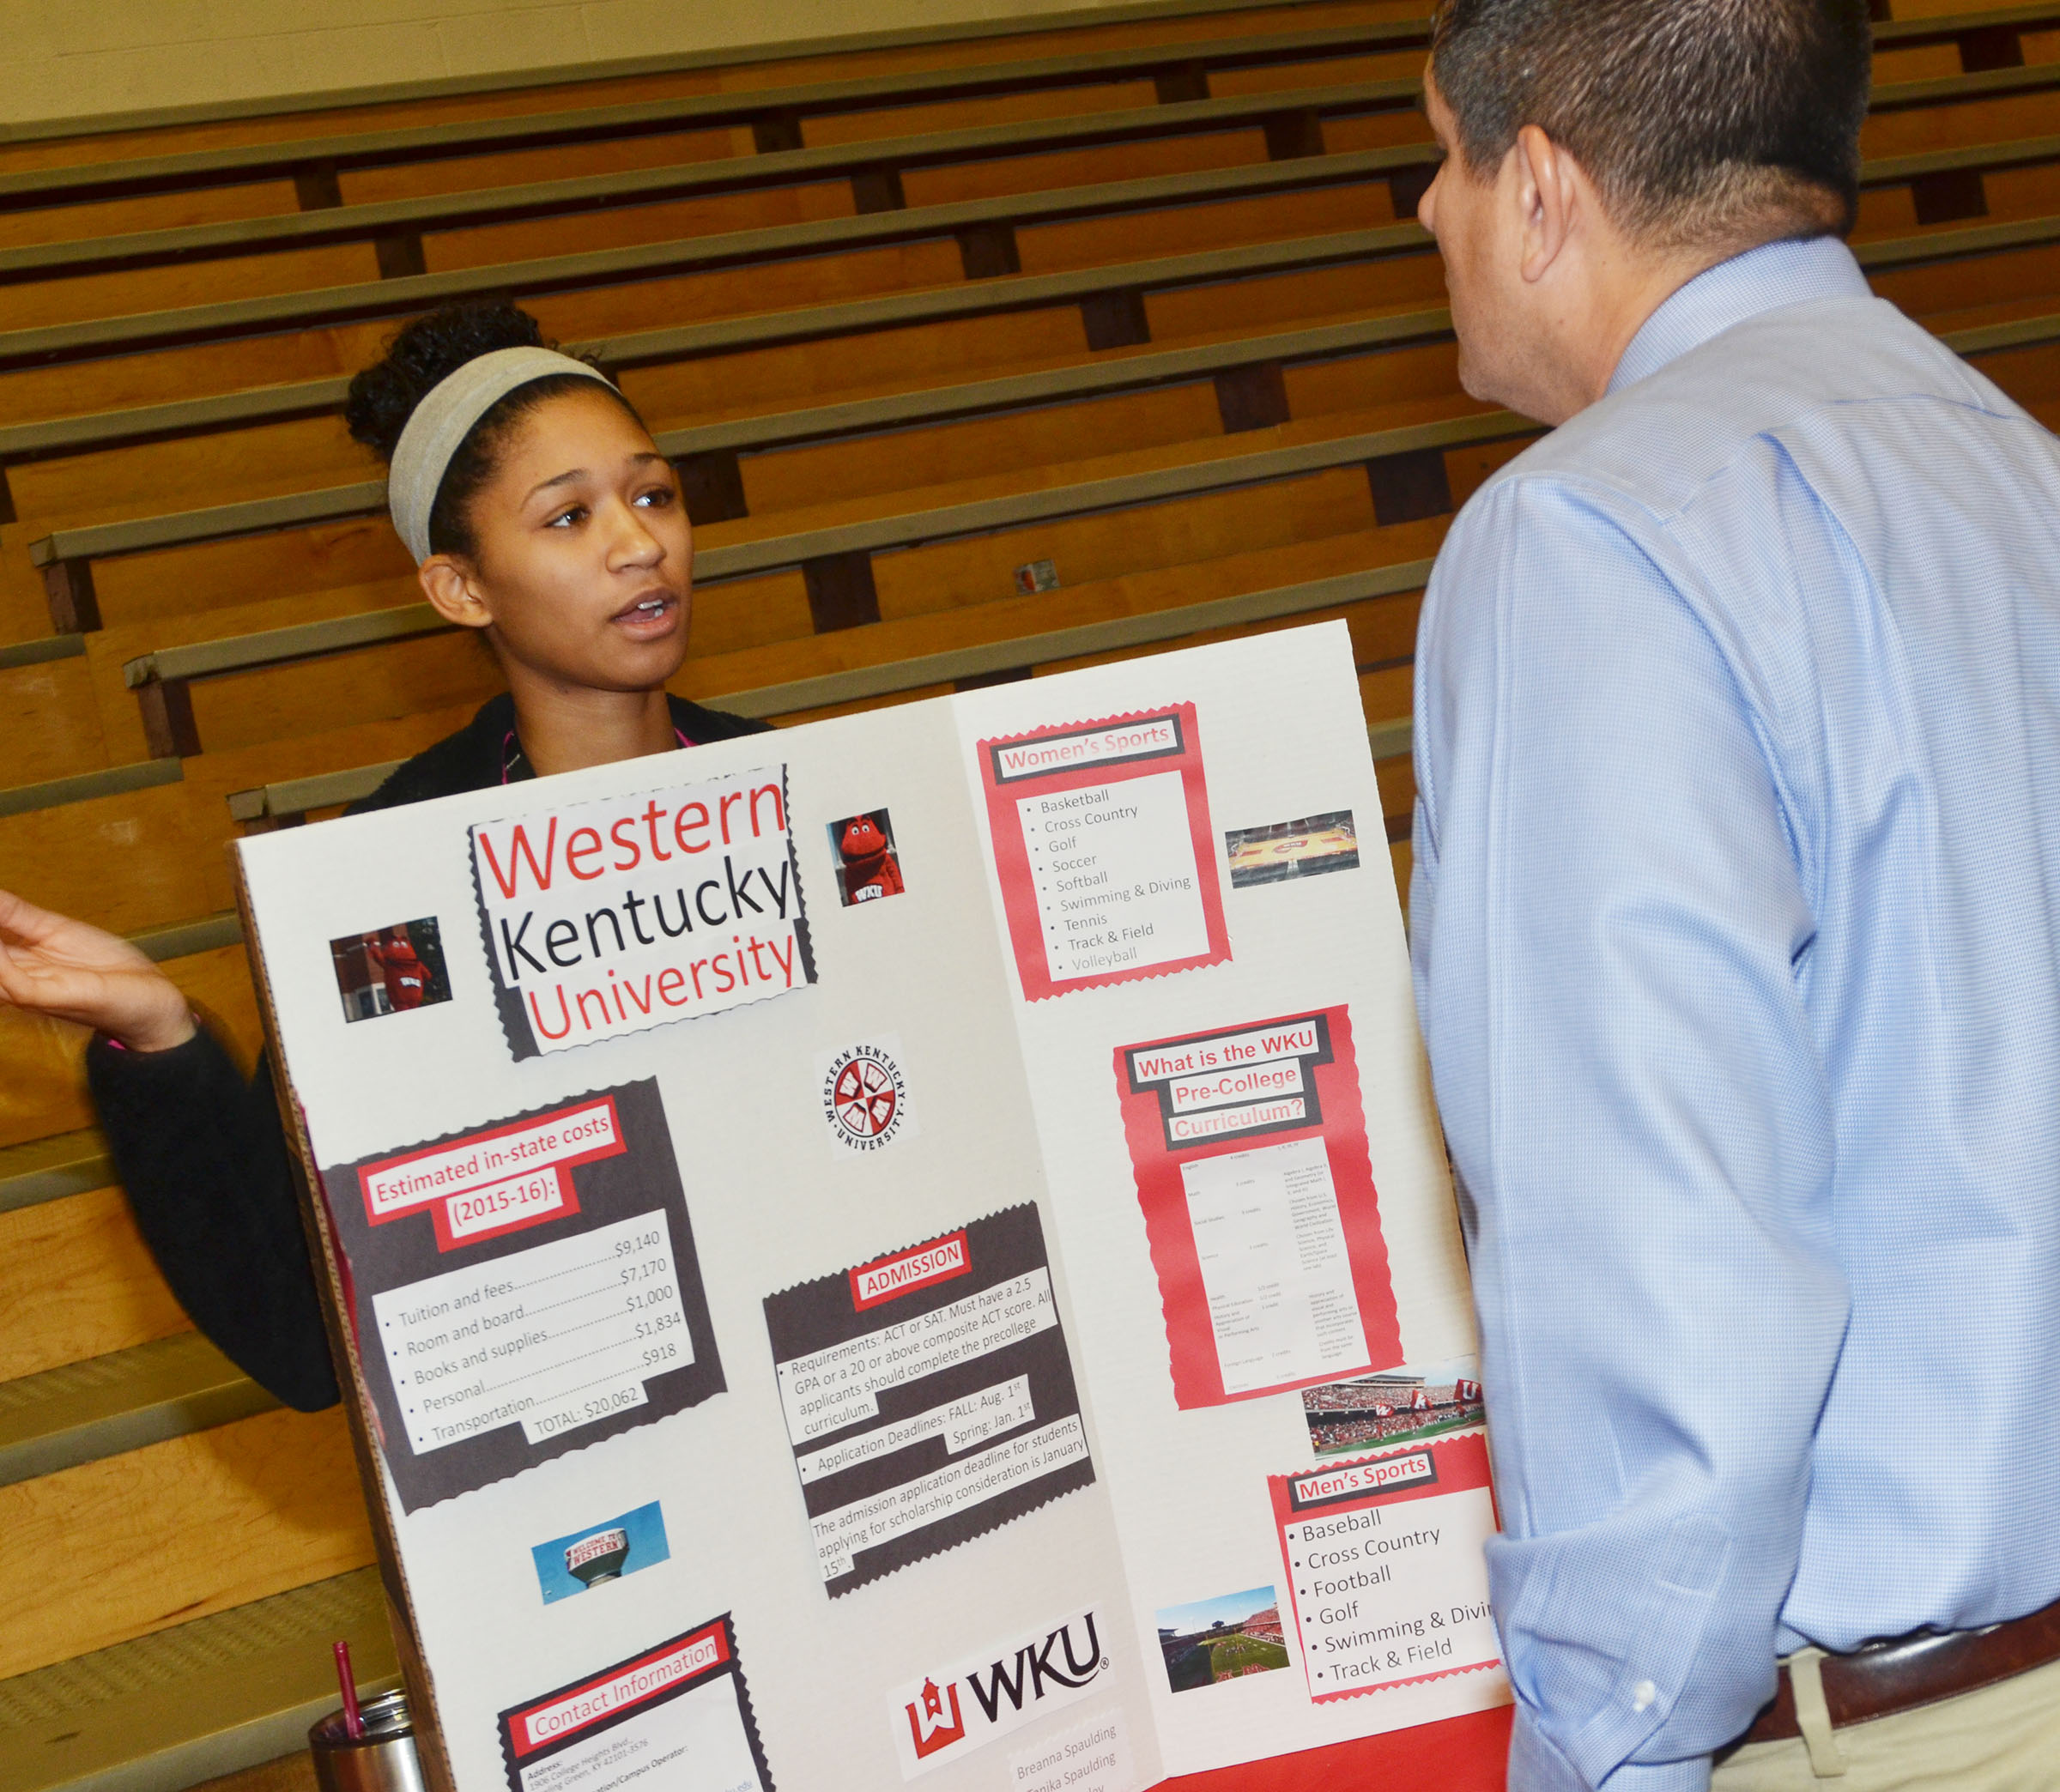 CHS senior Alexis Shears talks to Principal Kirby Smith about Western Kentucky University.